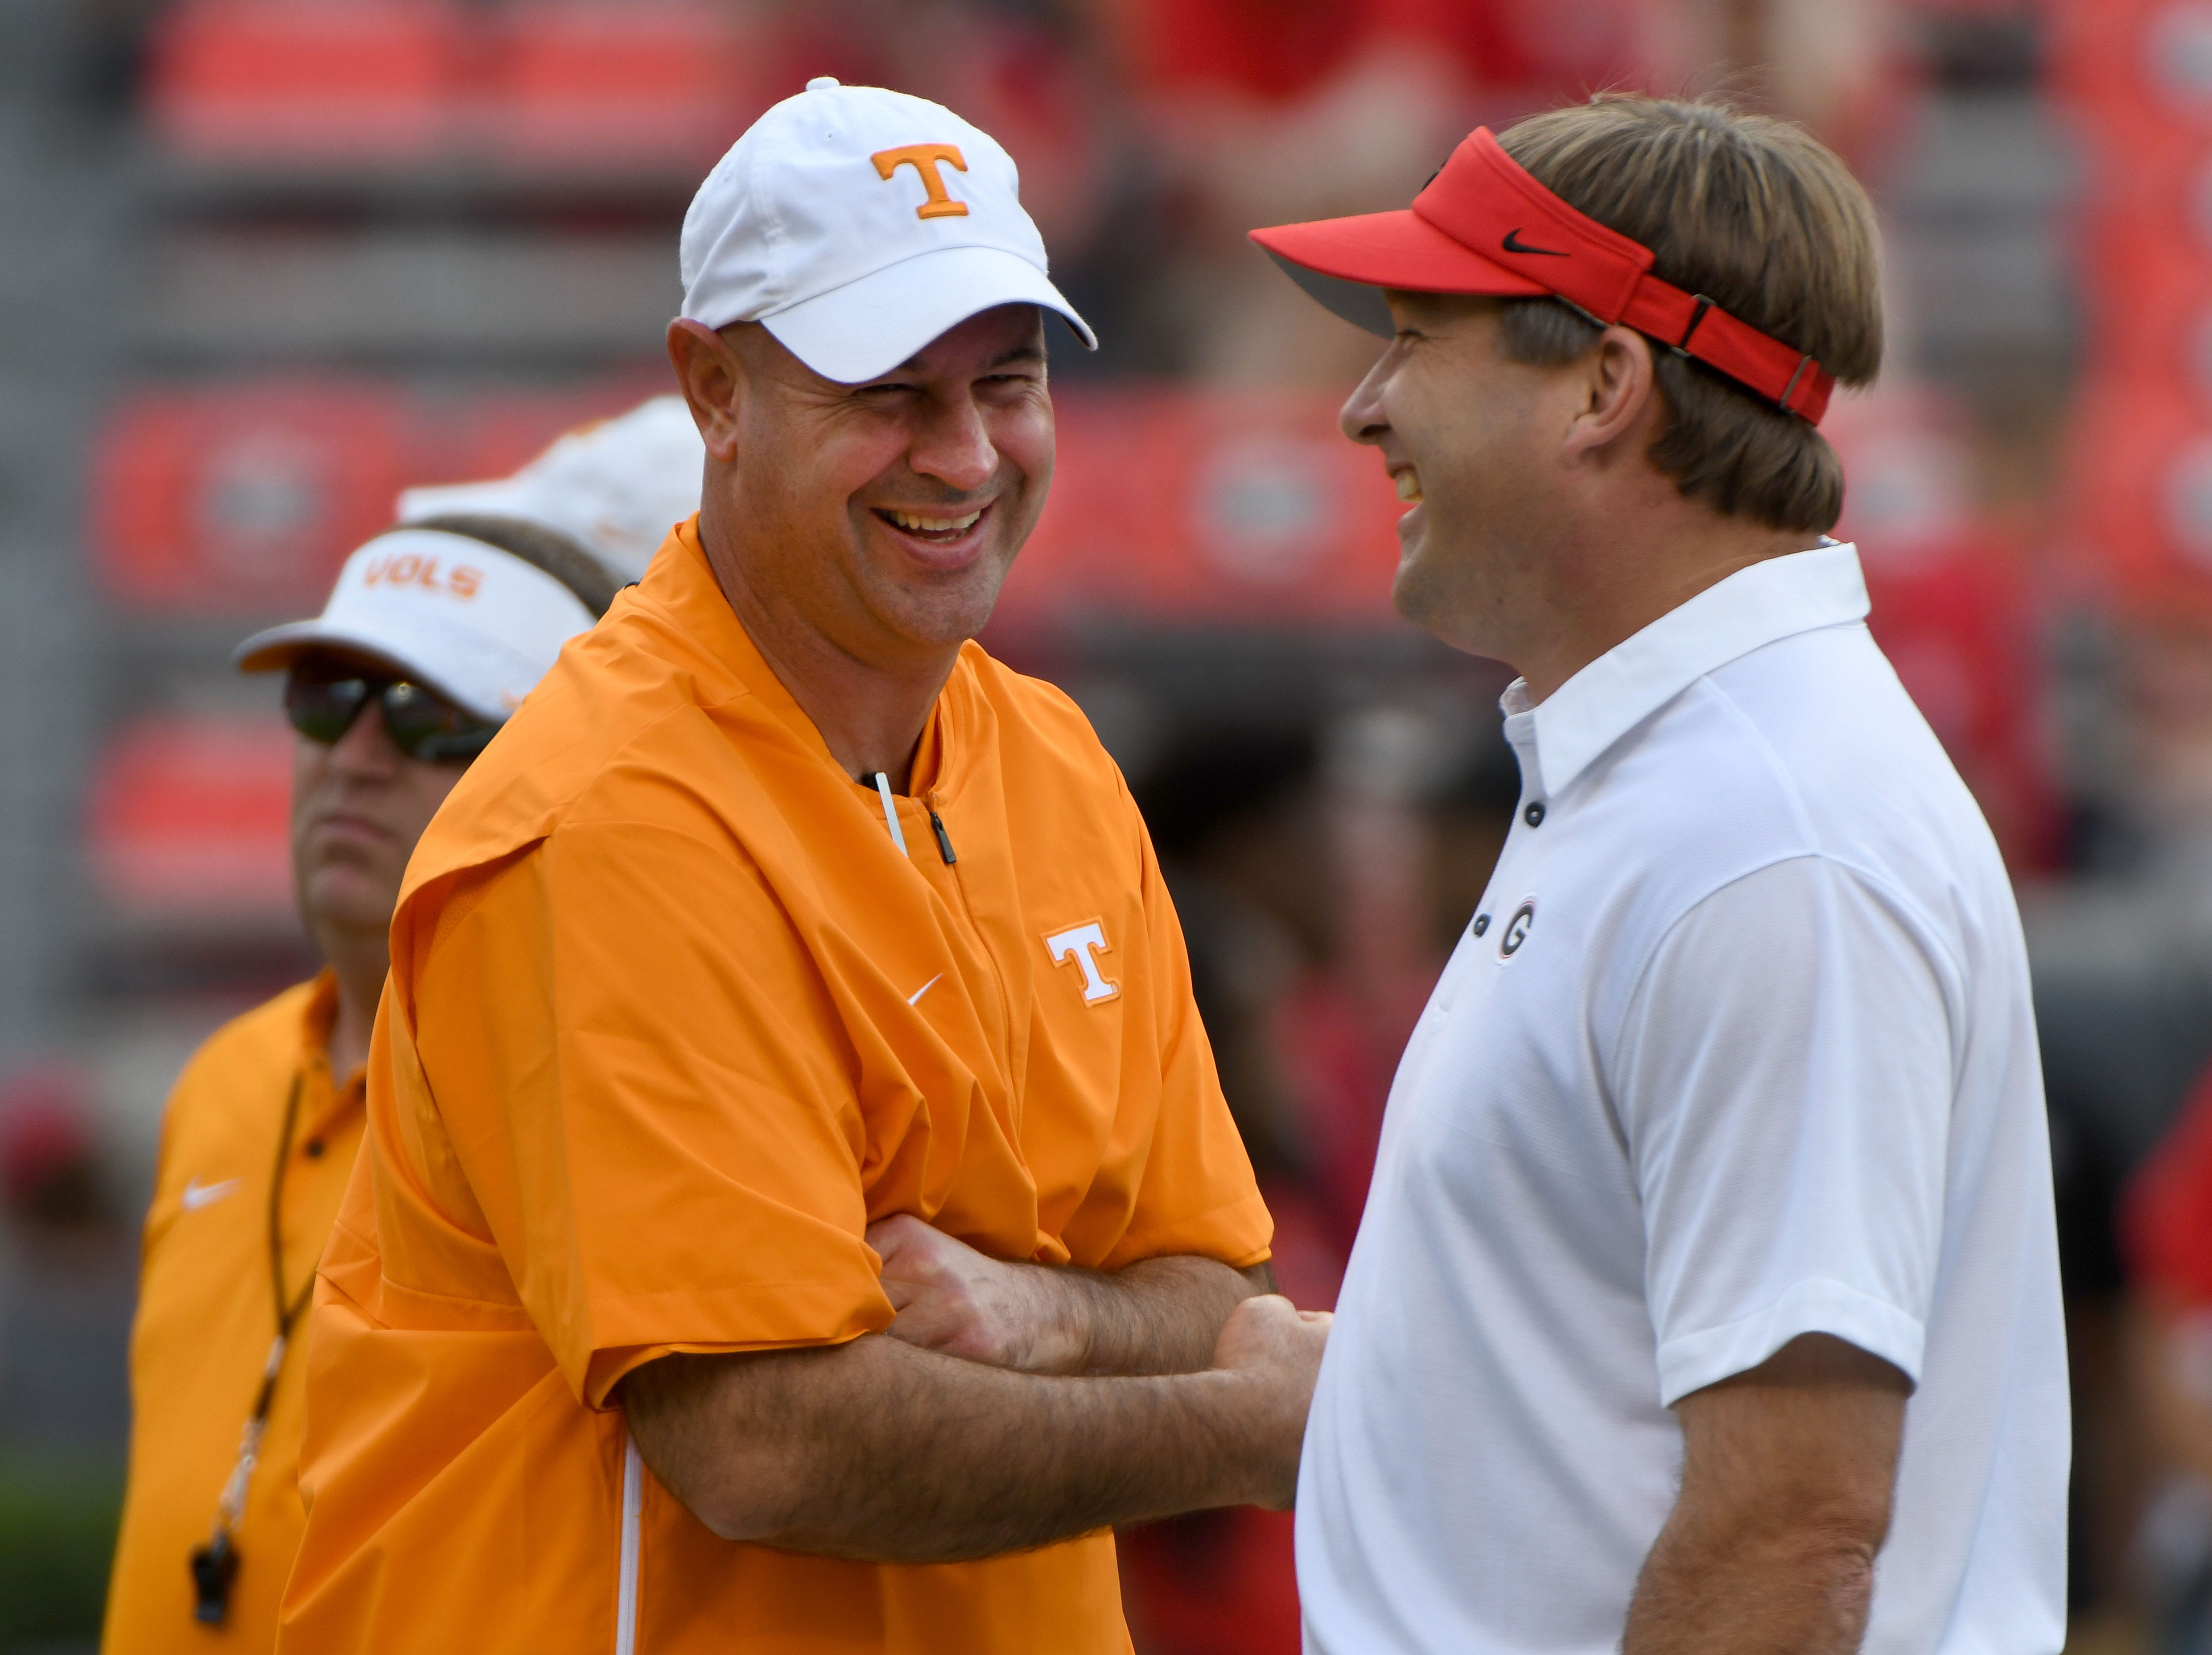 Tennessee Head Coach Jeremy Pruitt talks to Georgia Head Coach Kirby Smart during warm-ups before their game Saturday, September 29, 2018 at Sanford Stadium in Athens, GA.